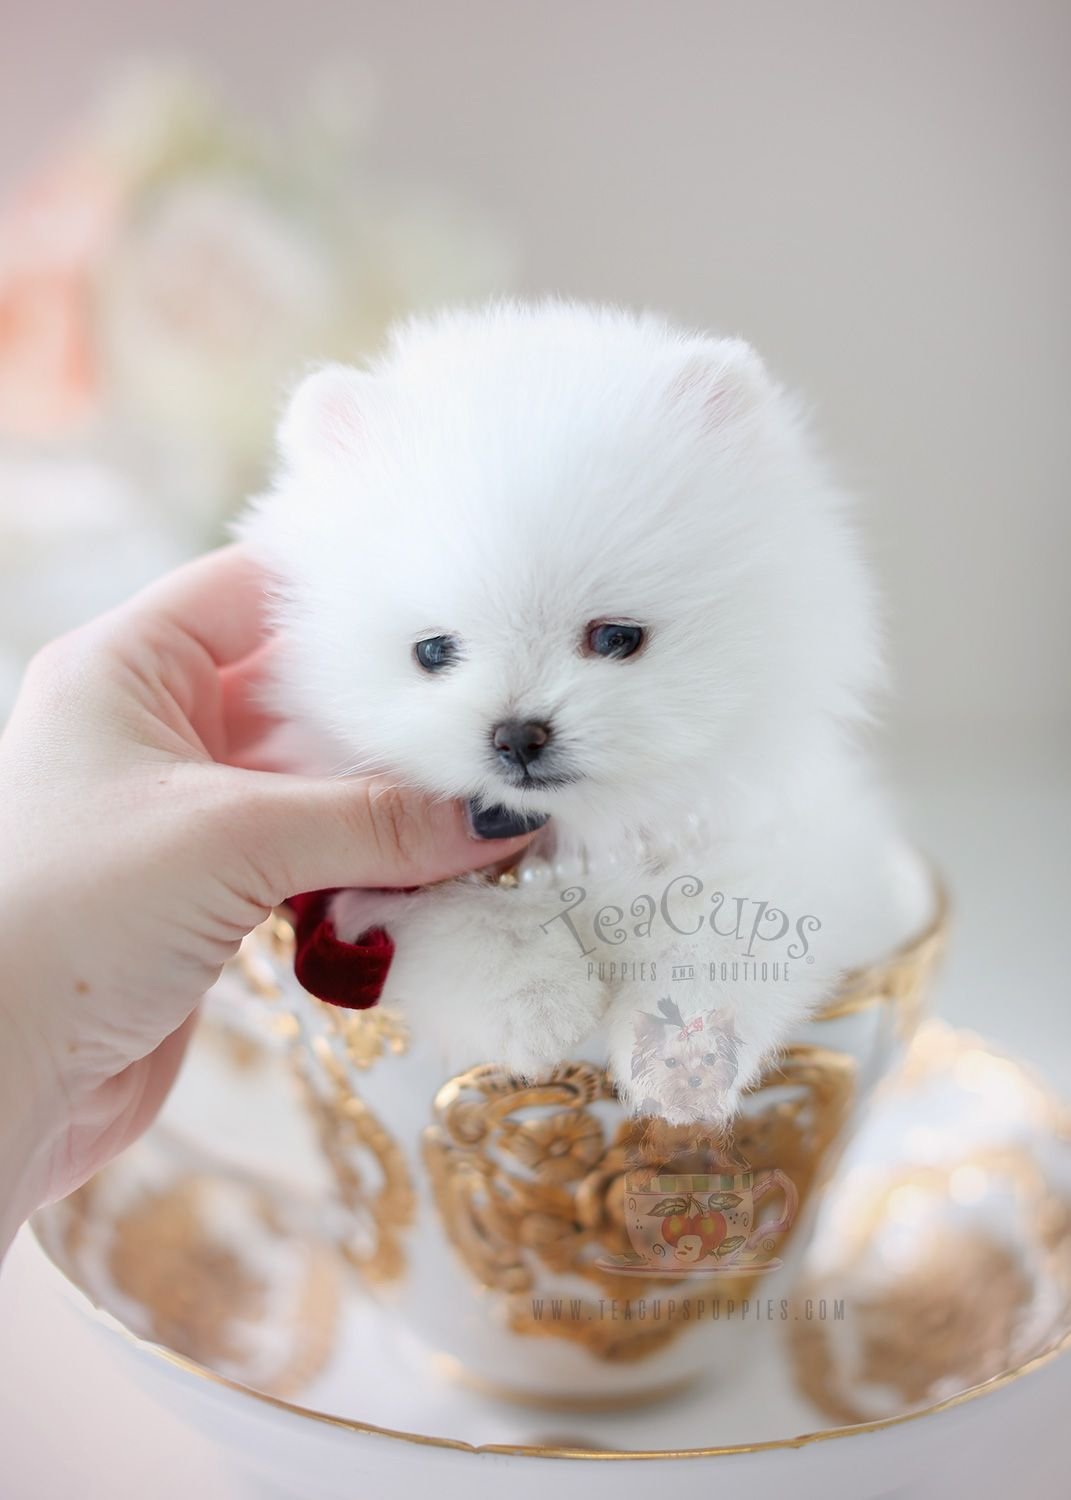 Snow White Teacup Sized Pomeranian Puppy By Teacup Puppies And Boutique Home Raised And Locally Bred In South Florida Teacuppomeranian Pom Cuccioli Animali